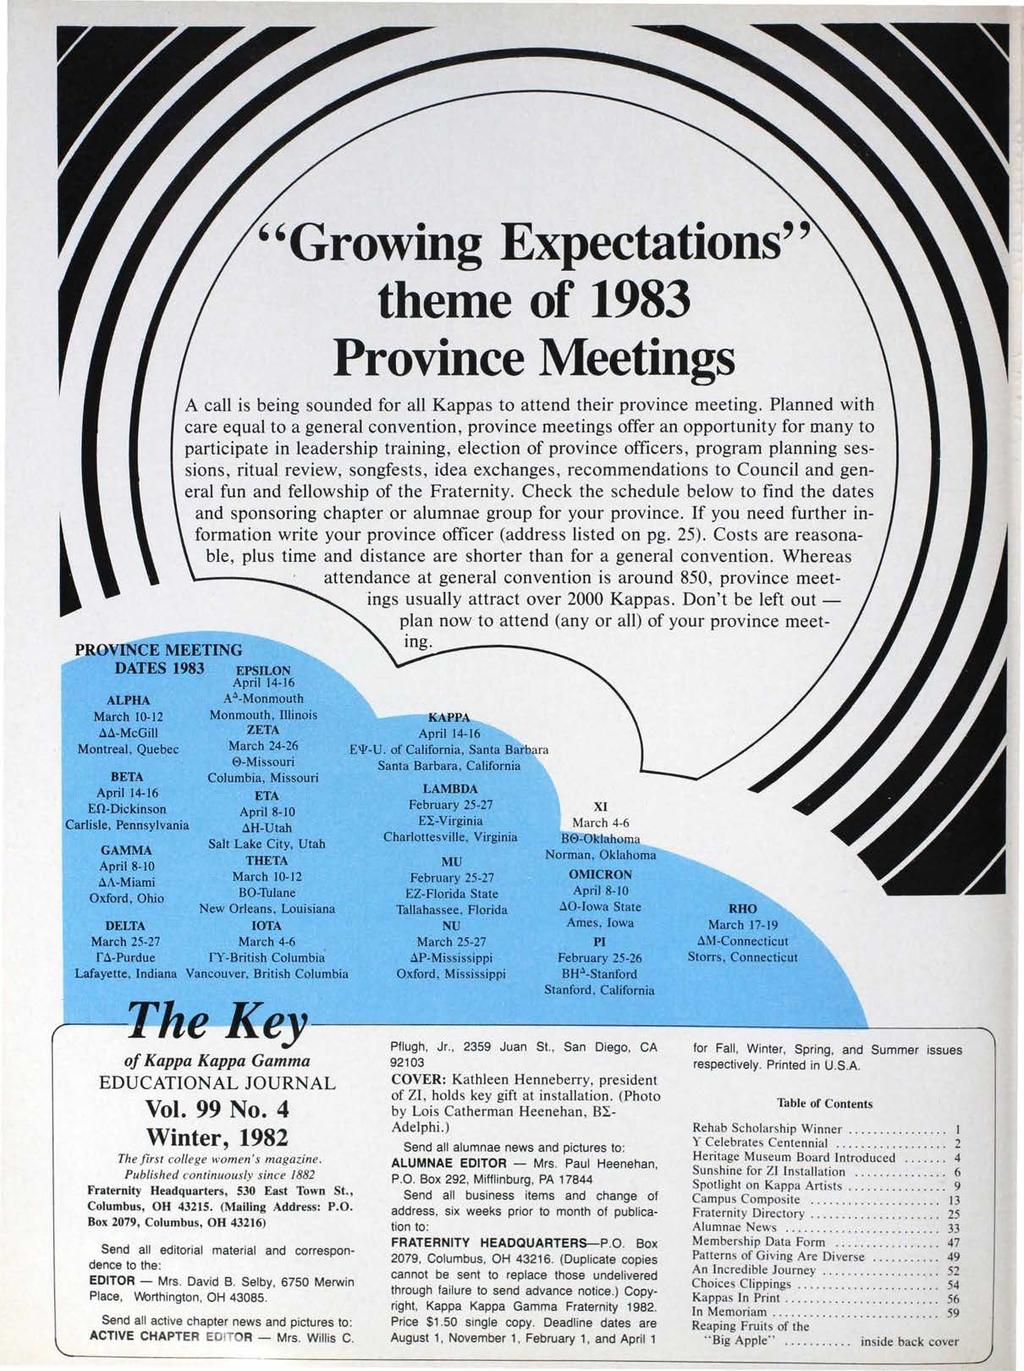 PR()VINCE MEETING DATES 1983 ALPHA March 10-12 ~d-mcgill Montreal, Quebec BETA April 14-16 EO-Dickinson Carlisle, Pennsylvania ''Growing Expectations'' theme of 1983 Province Meetings A call is being